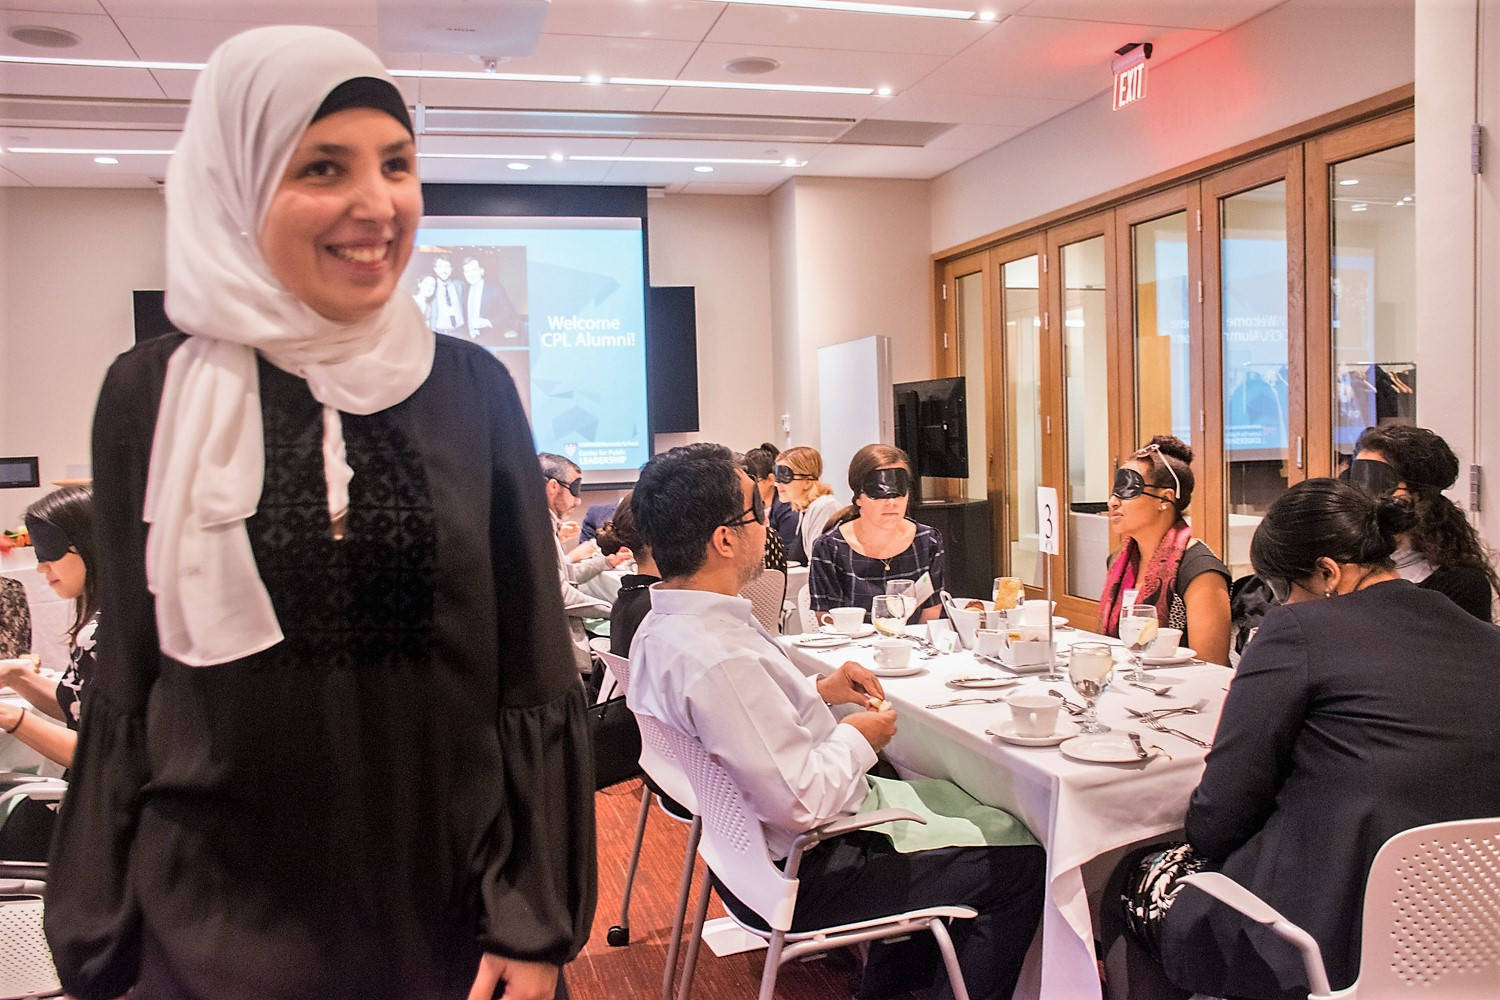 Sara Minkara, the session's facilitator, stands smiling ear to ear as she overhears the insightful conversations taking place around the room. Blindfolded participants sit at tables around Sara.